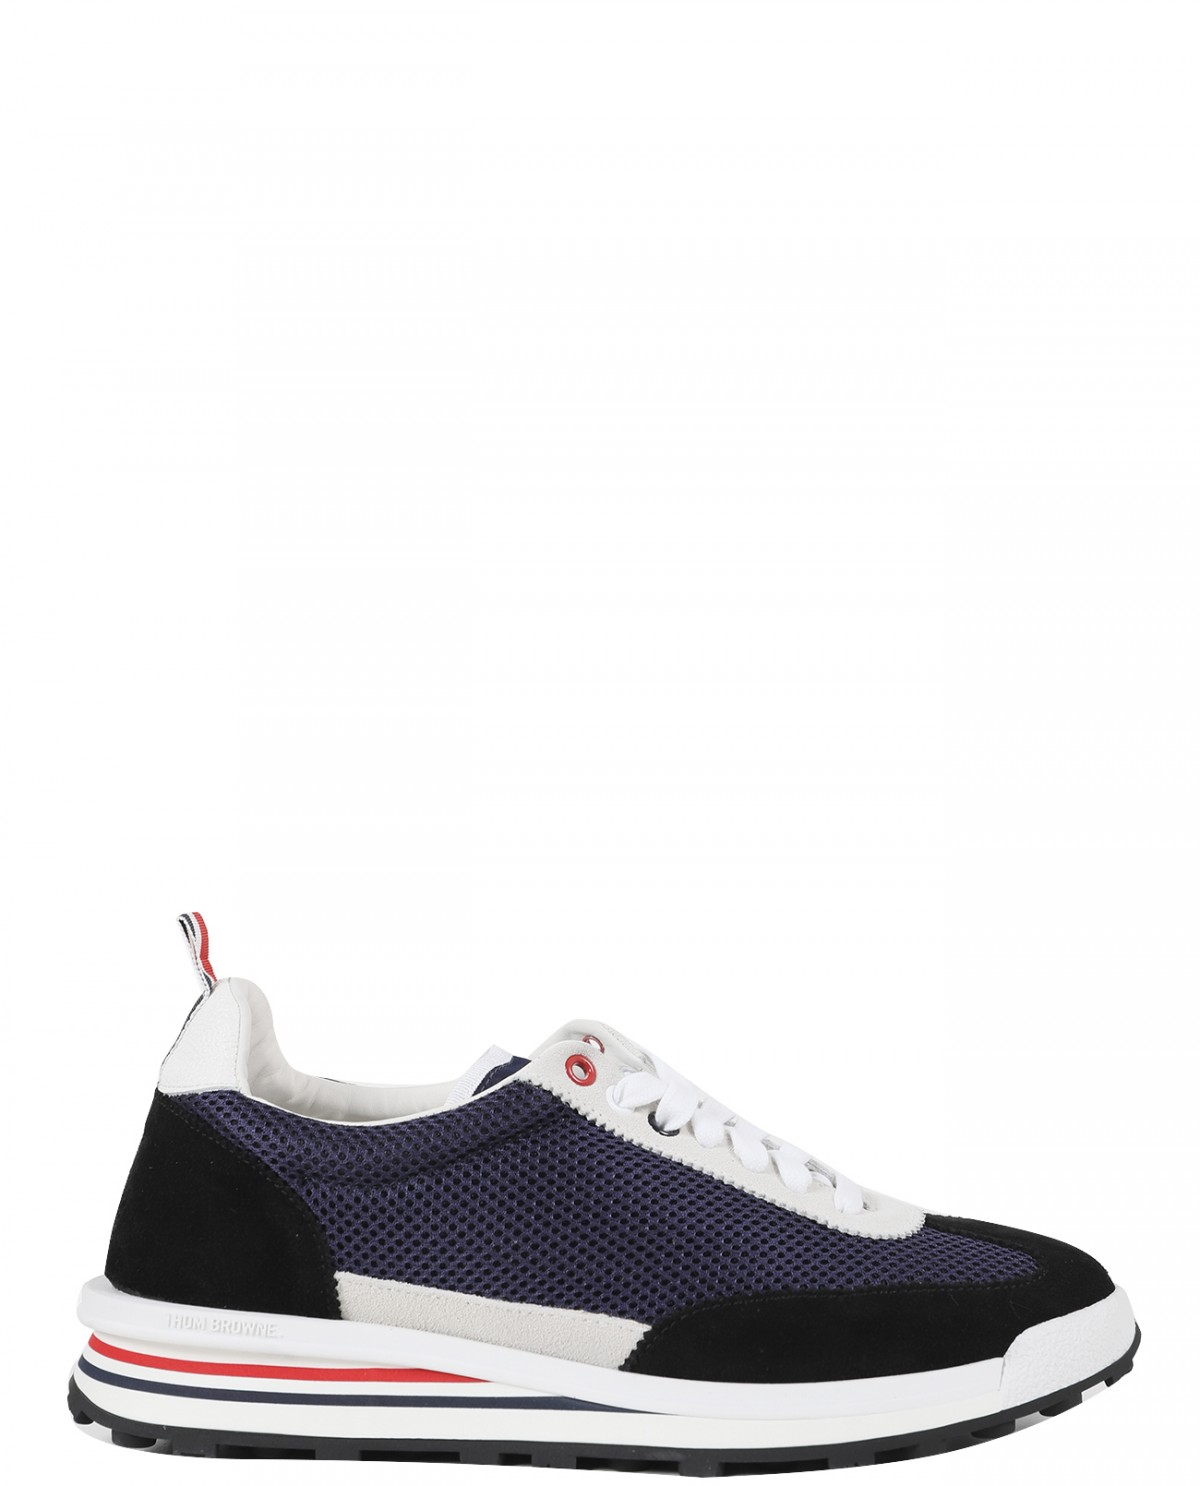 Thom Browne navy tech runners